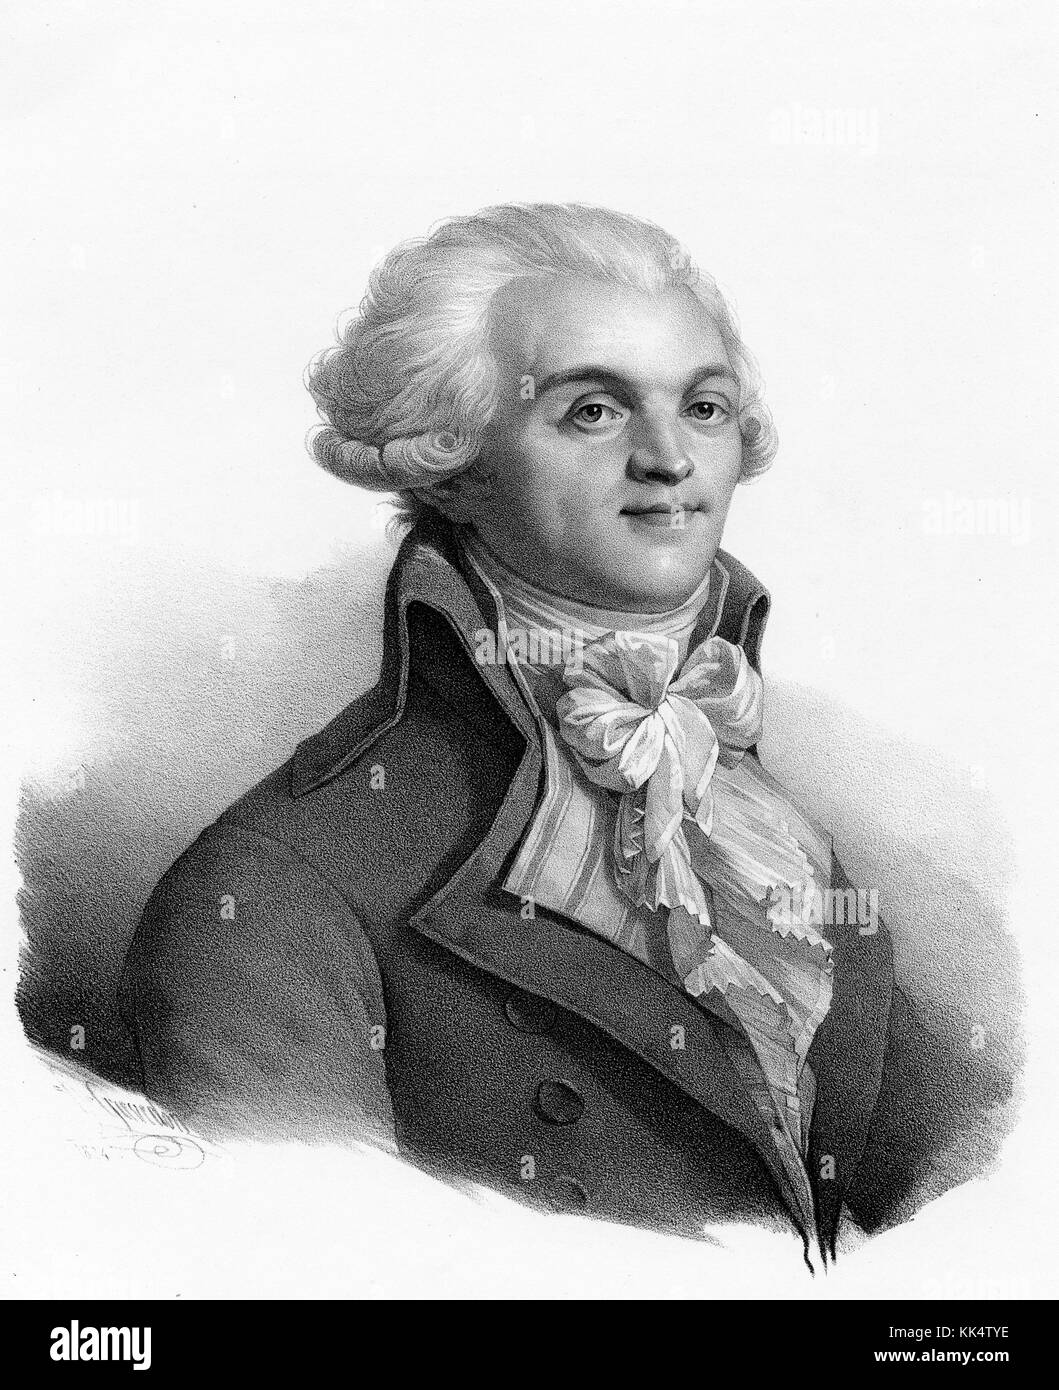 An engraving from a portrait of Maximilien Robespierre, he was a French lawyer and politician, he was known for - Stock Image